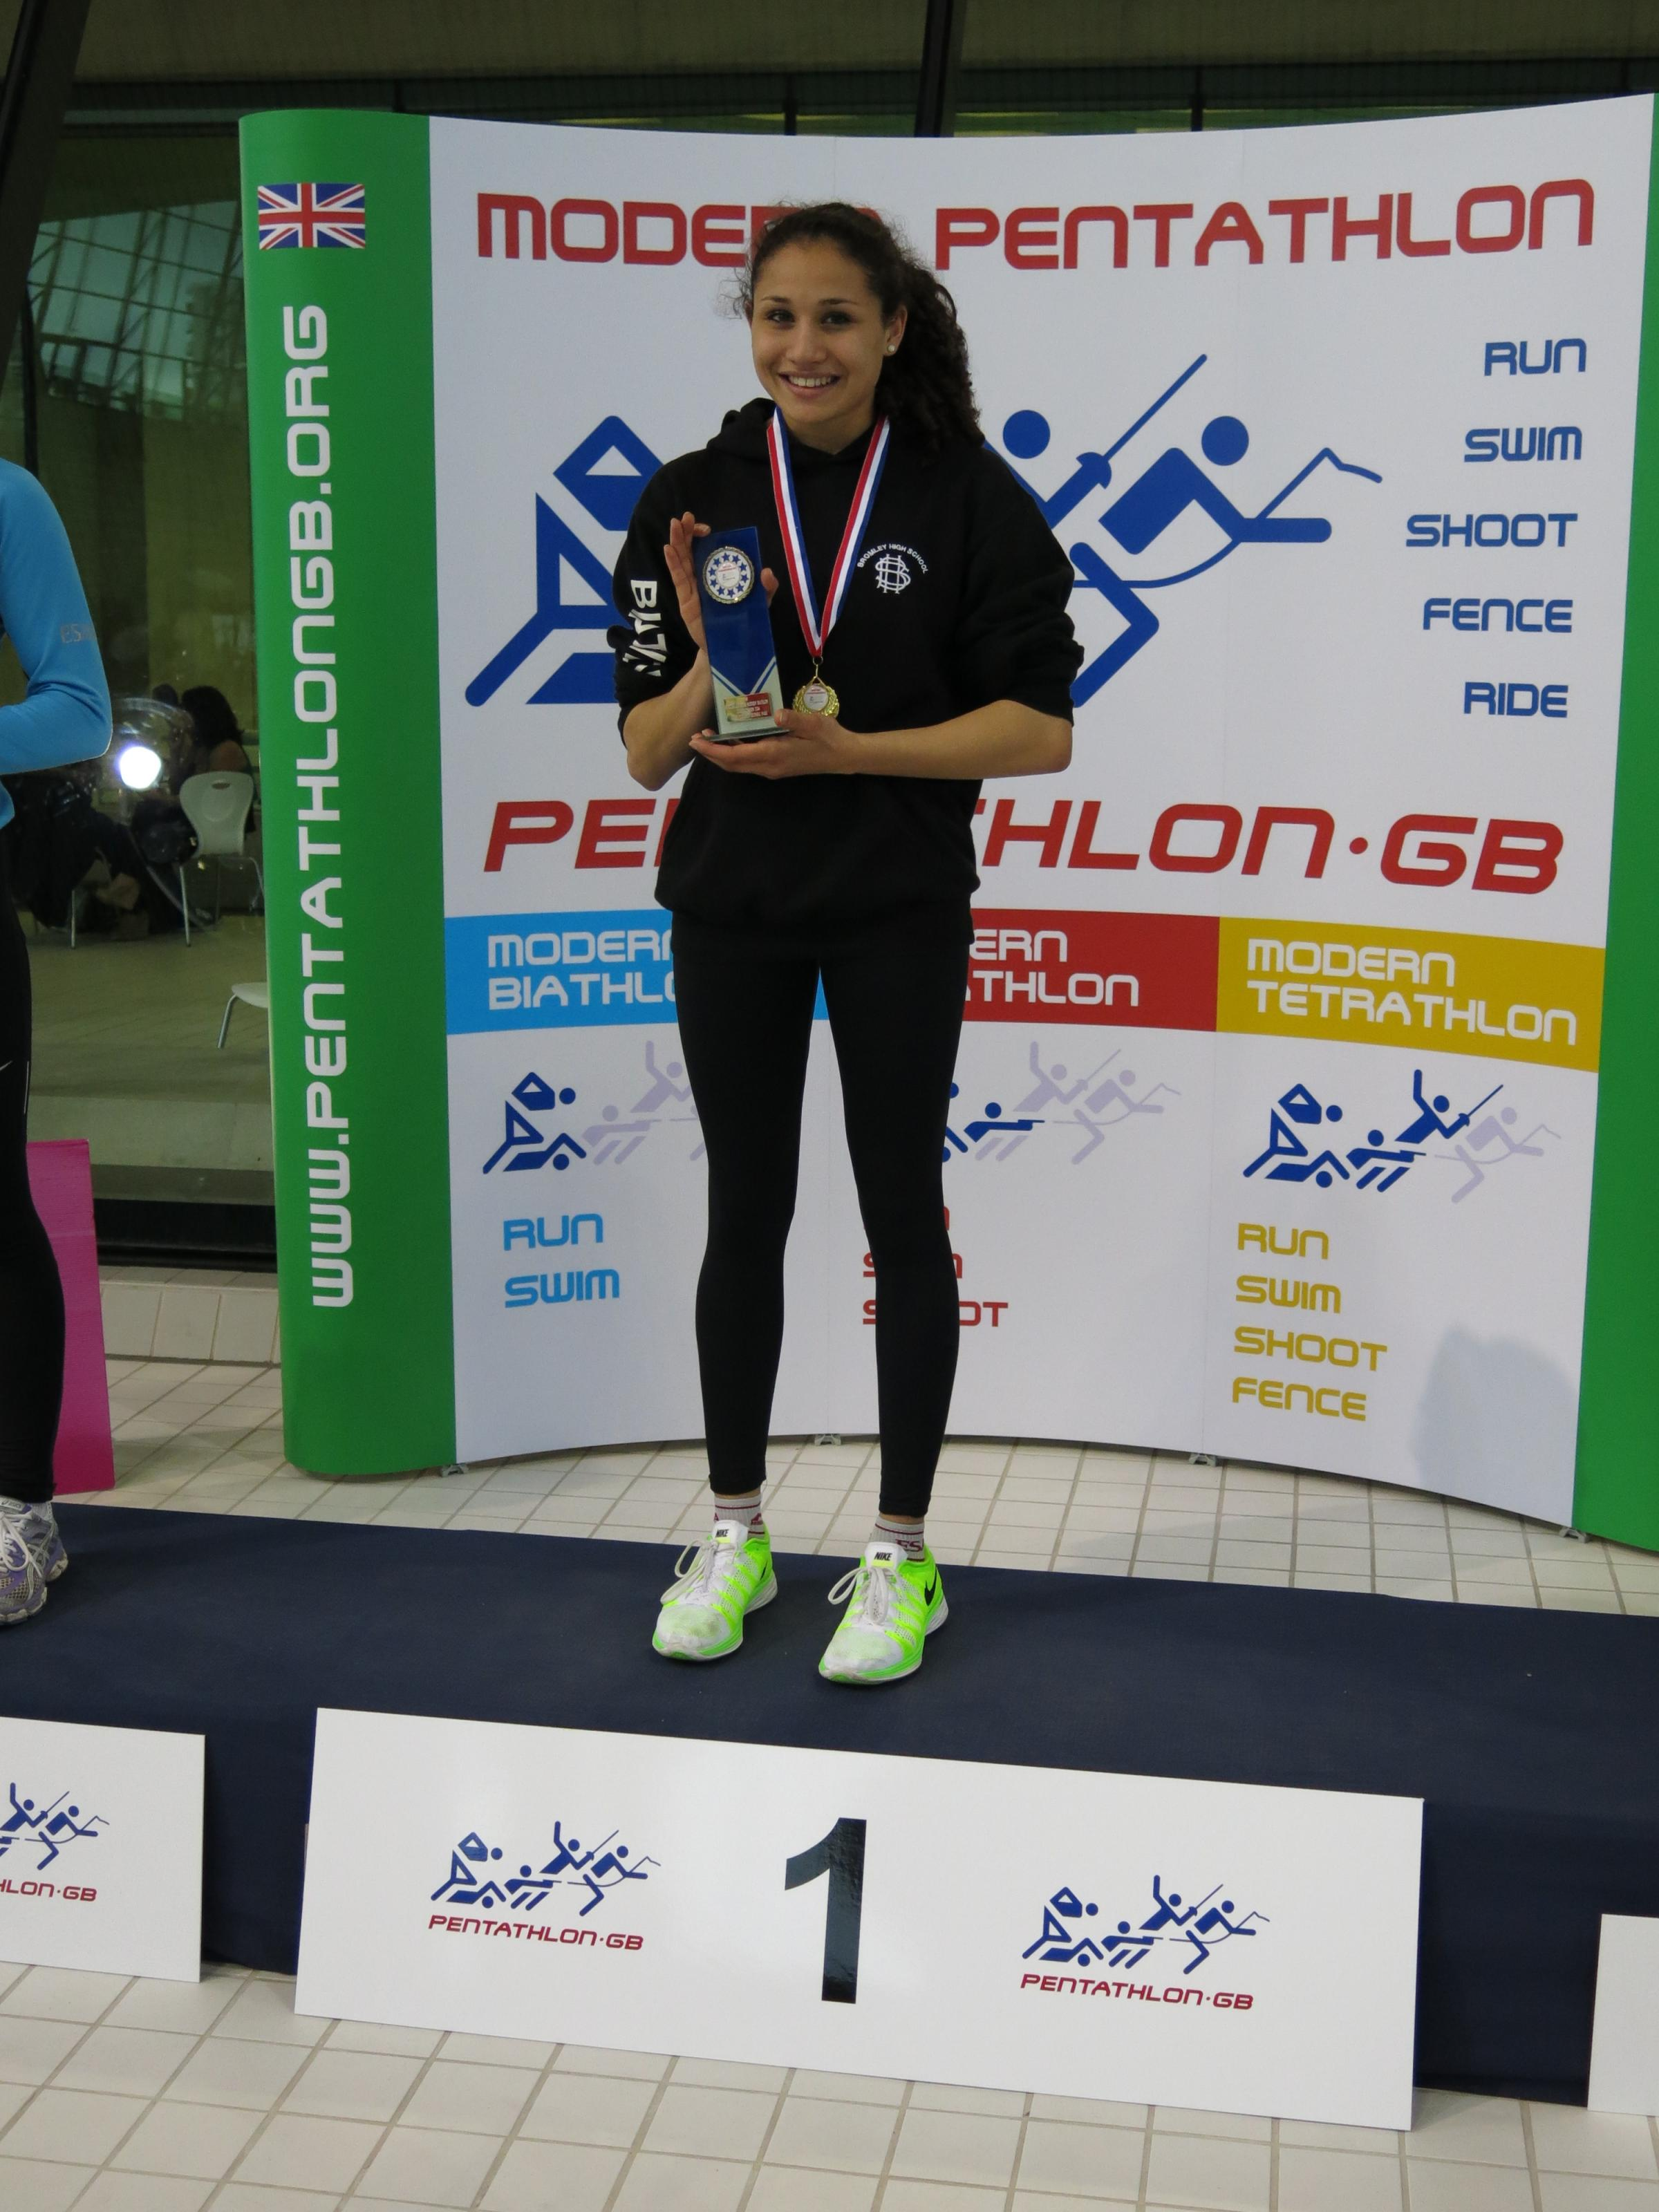 Bromley girls scoop national titles at London's Olympic Park